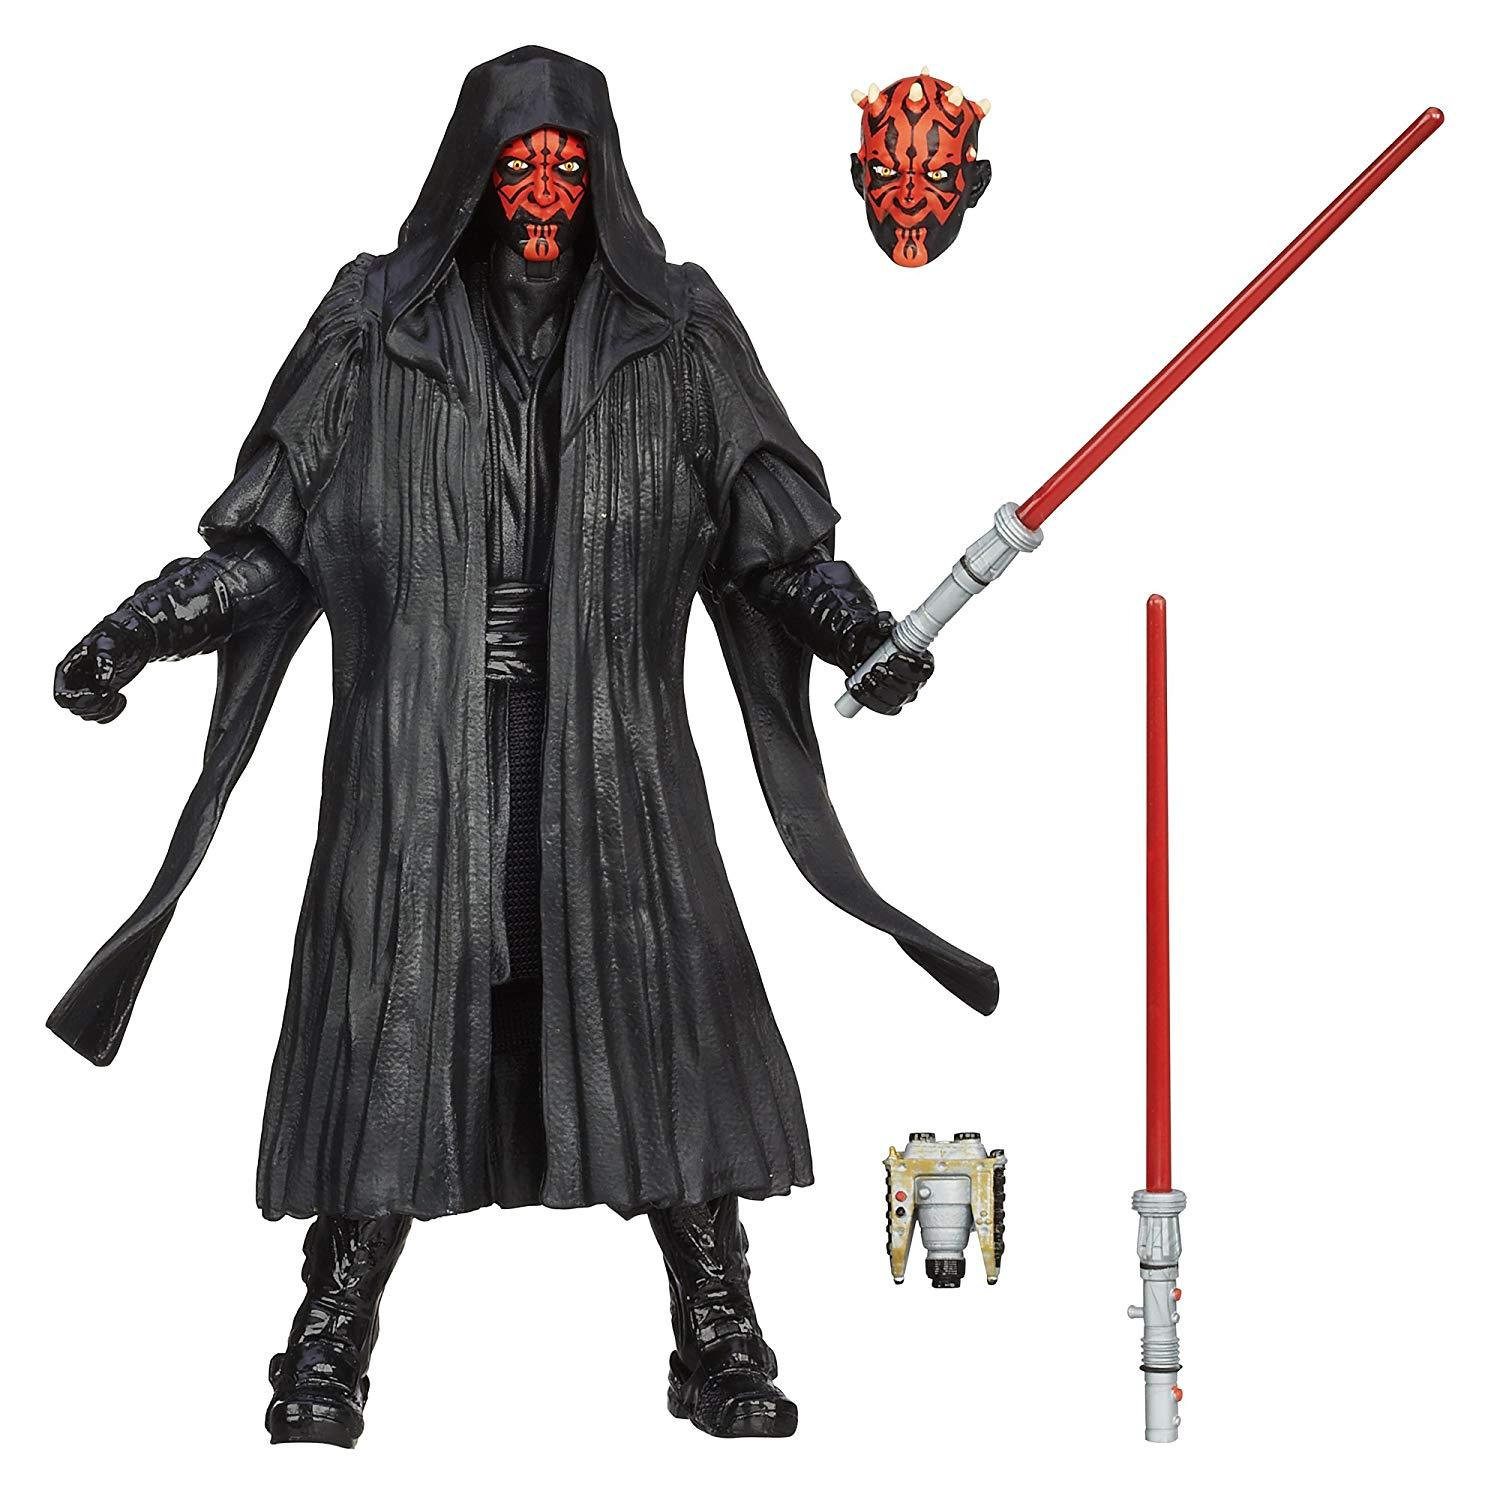 Star Wars Black Series Archive Collection Darth Maul 6 inch action figure